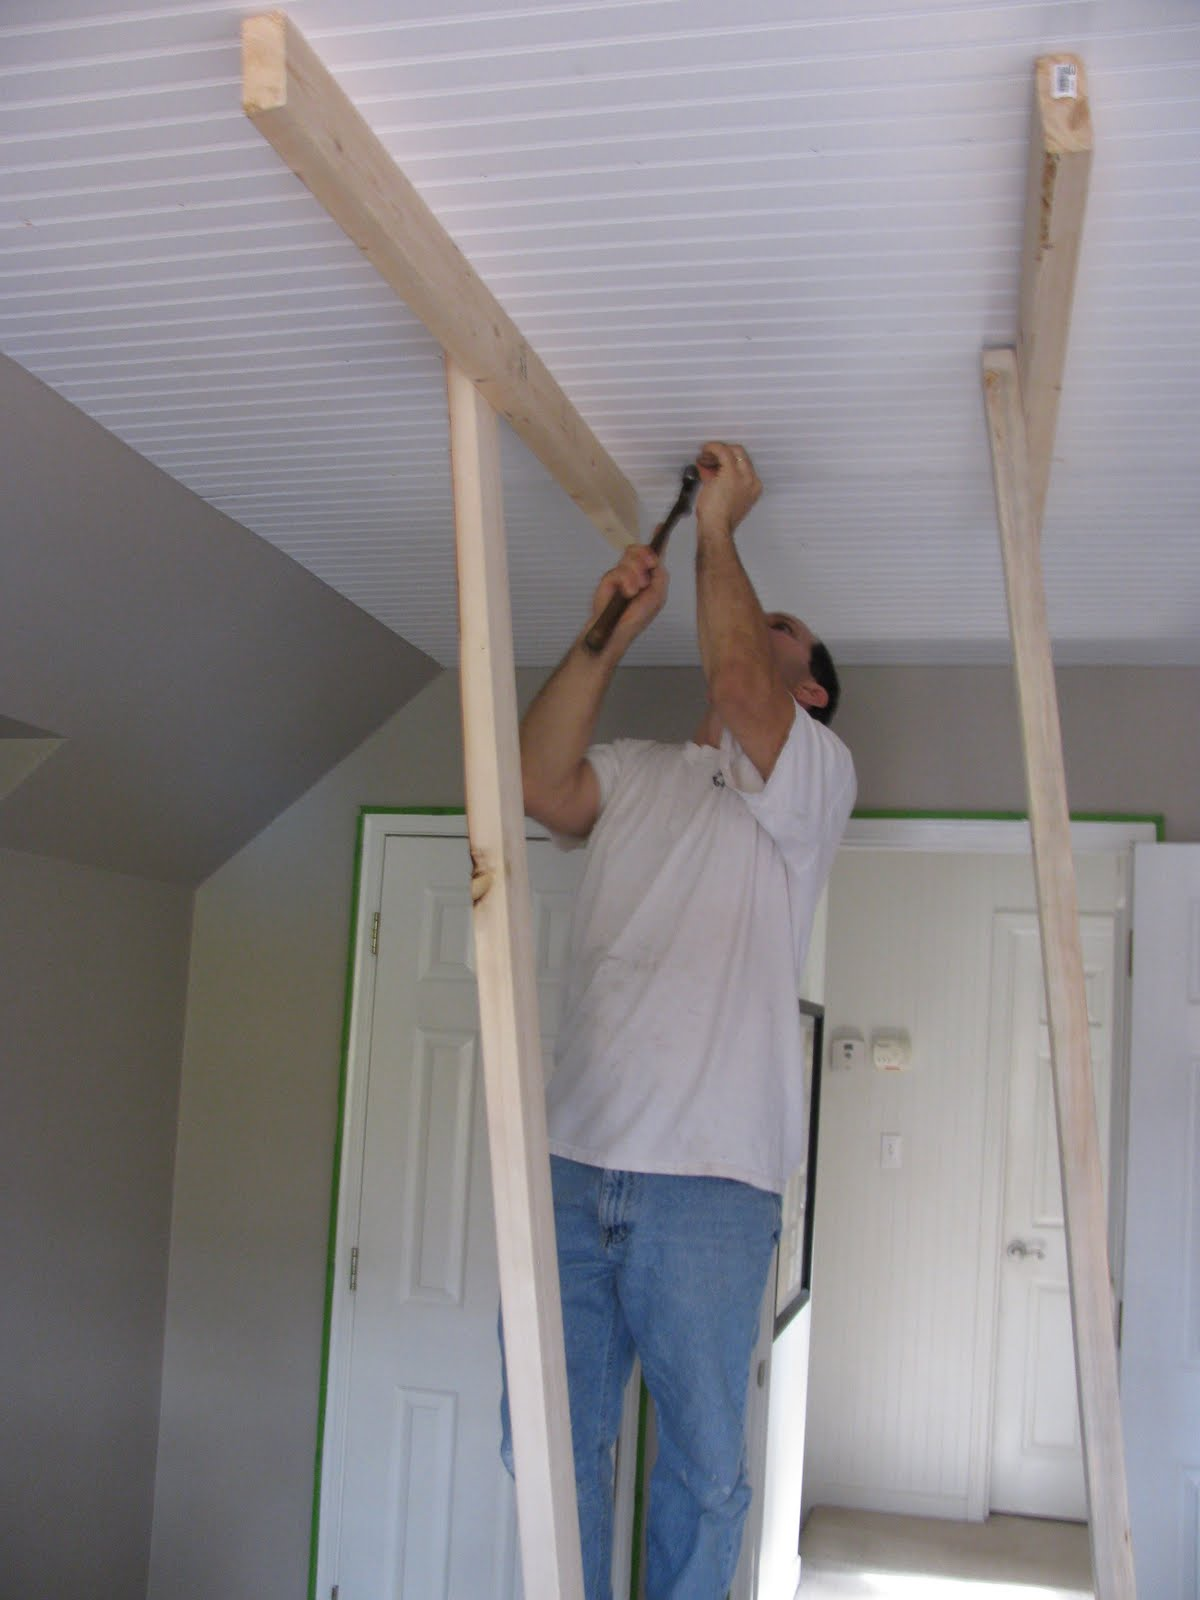 is plank ceiling a bad idea - Our Creative Life Beadboard on the Ceiling e you serious